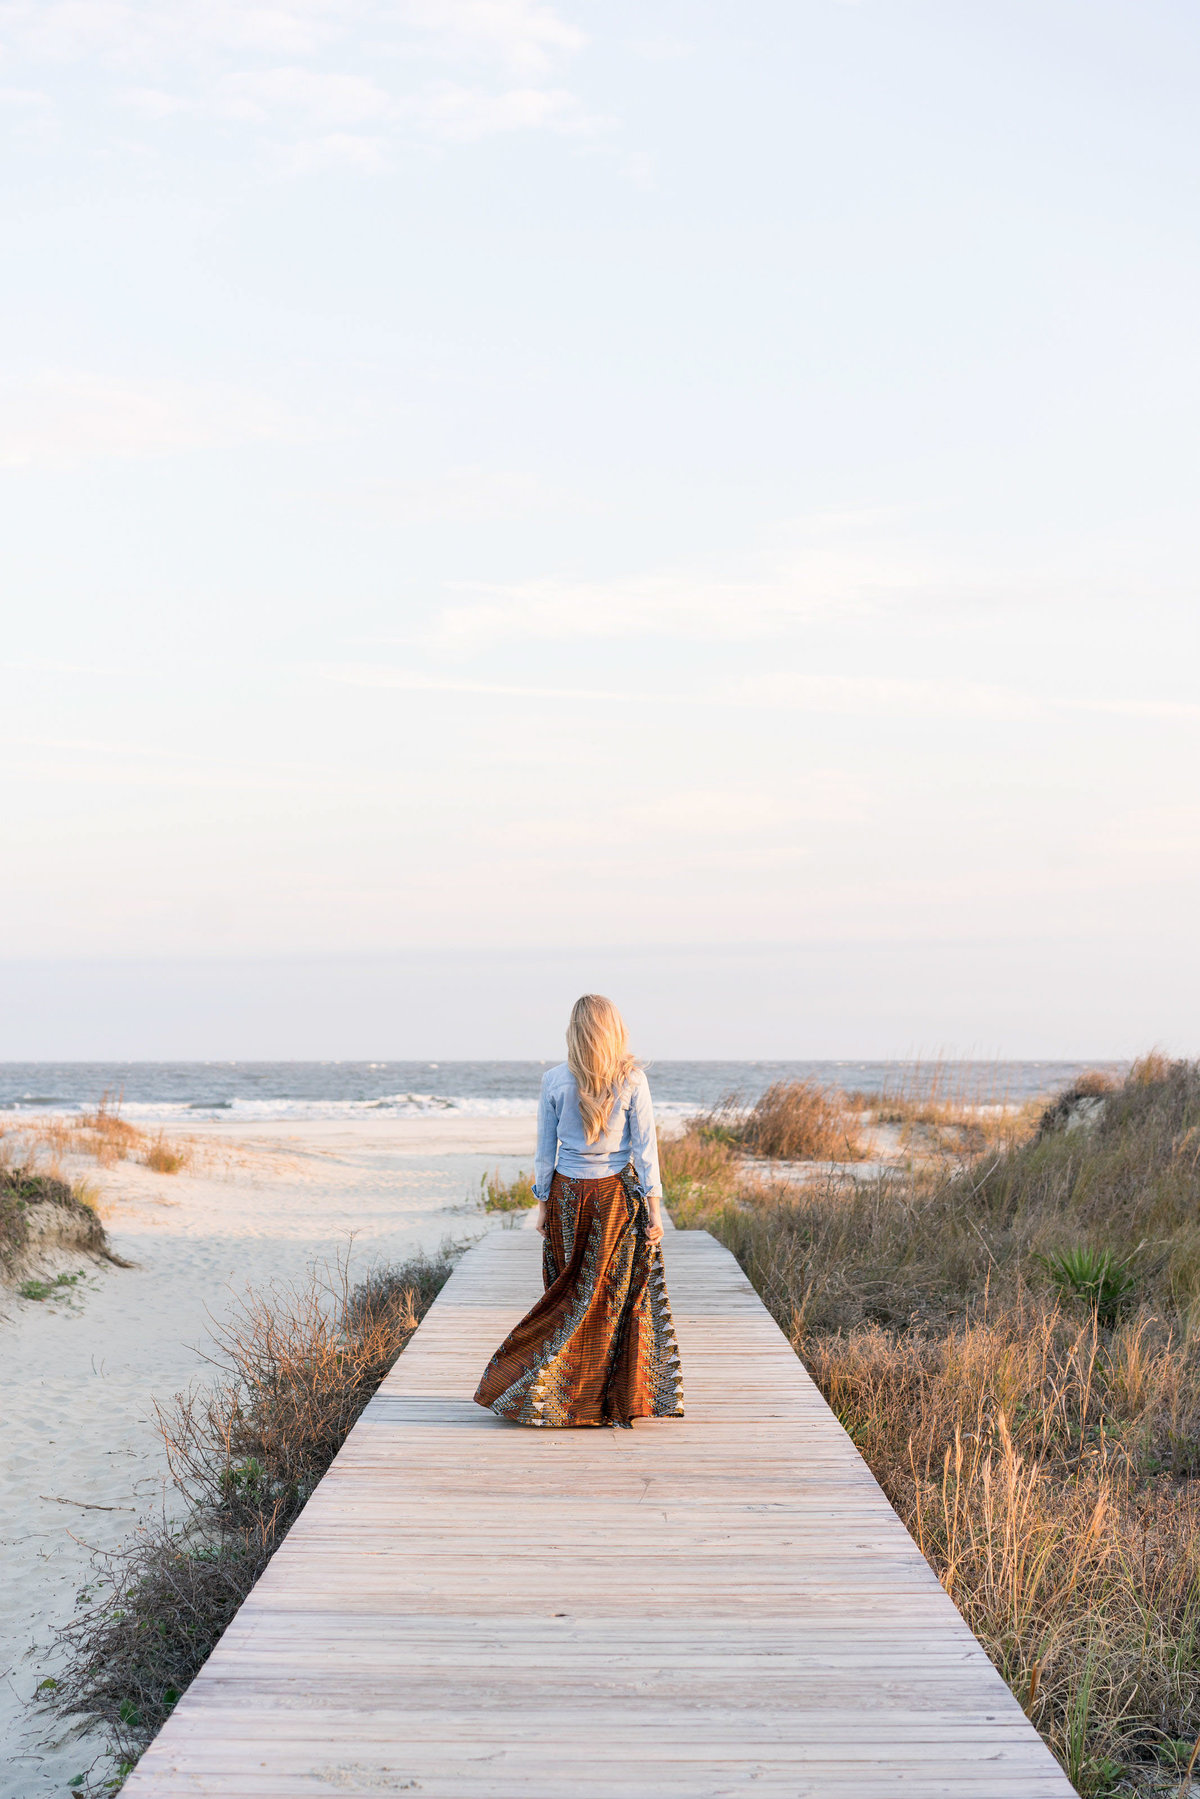 Abby-Murphy-Photo-Portraits-Branding-Lowcountry-Lifestyling-2